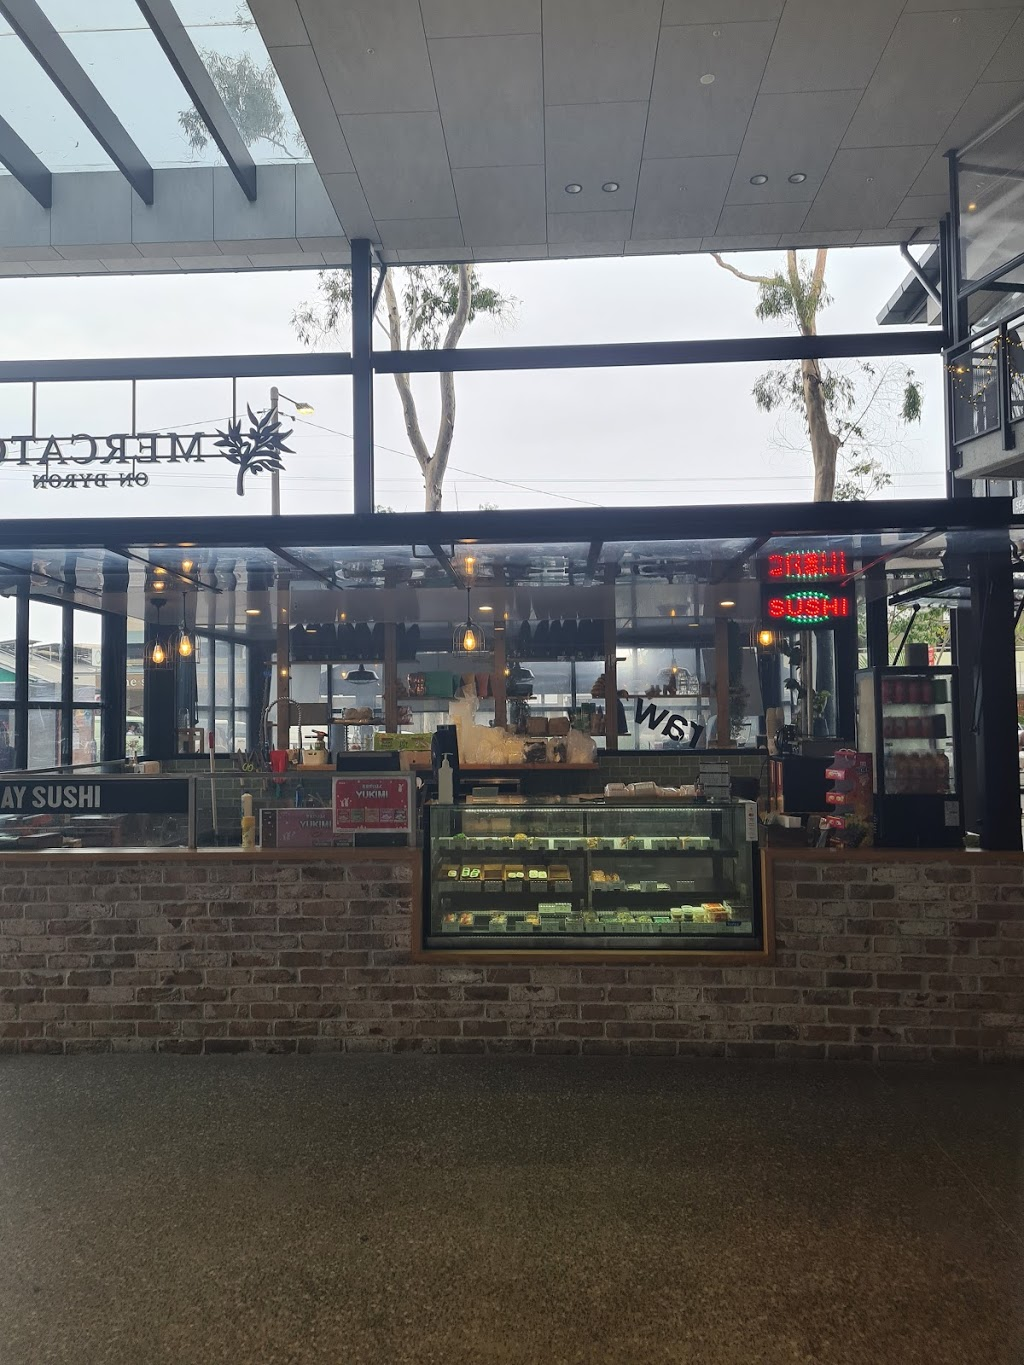 Bay Sushi | meal takeaway | Australia, New South Wales, Byron Bay, 114 K1A Mercato on byron 108